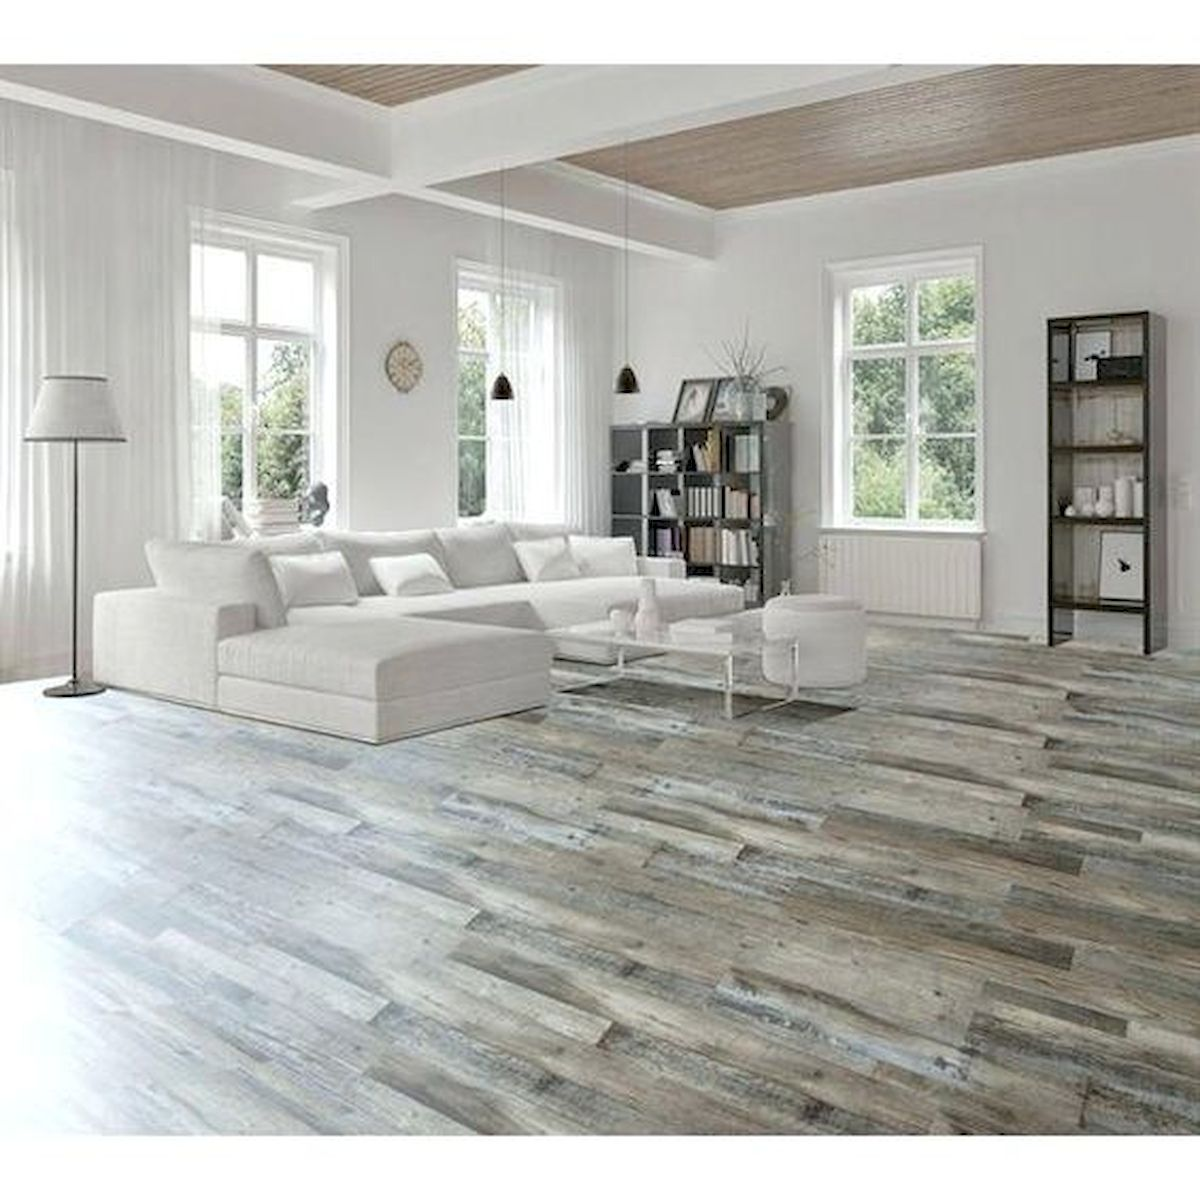 80 Gorgeous Hardwood Floor Ideas for Interior Home (61)